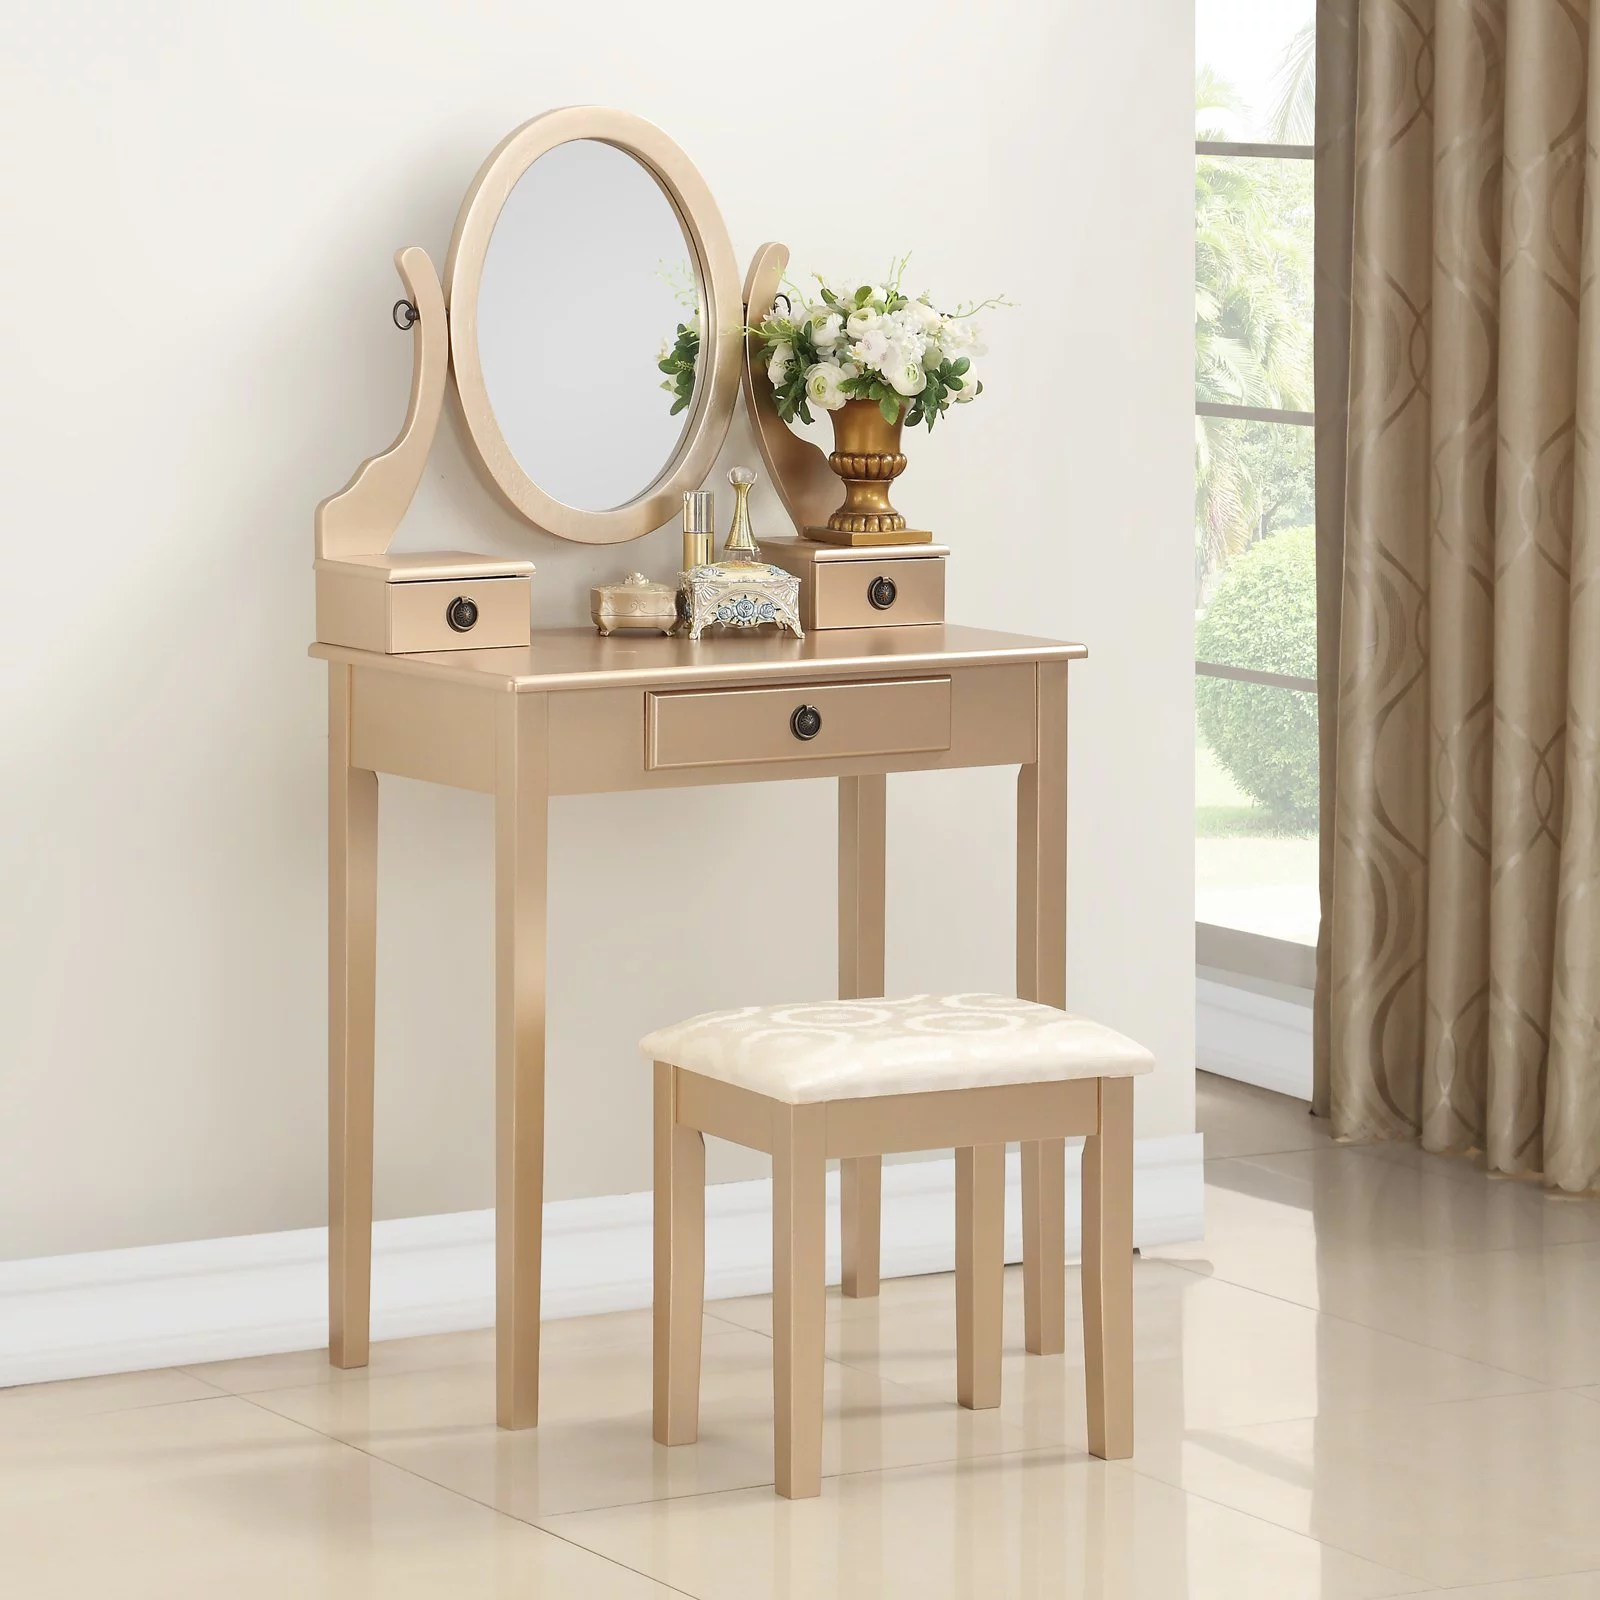 roundhill moniya wood makeup vanity table and stool set gold